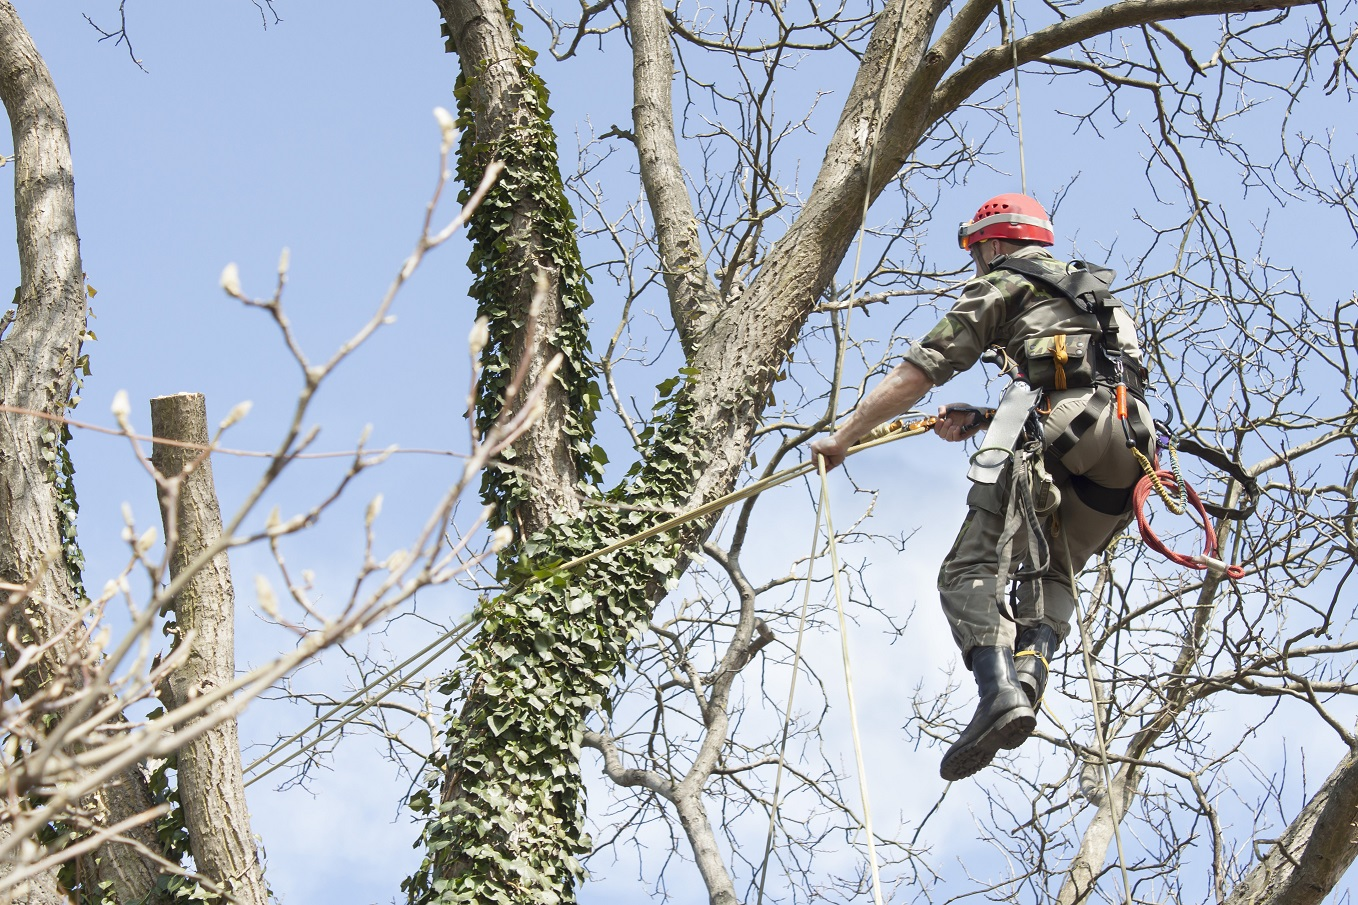 An arborist using a chainsaw to cut a walnut tree, dangerous work, tree pruning